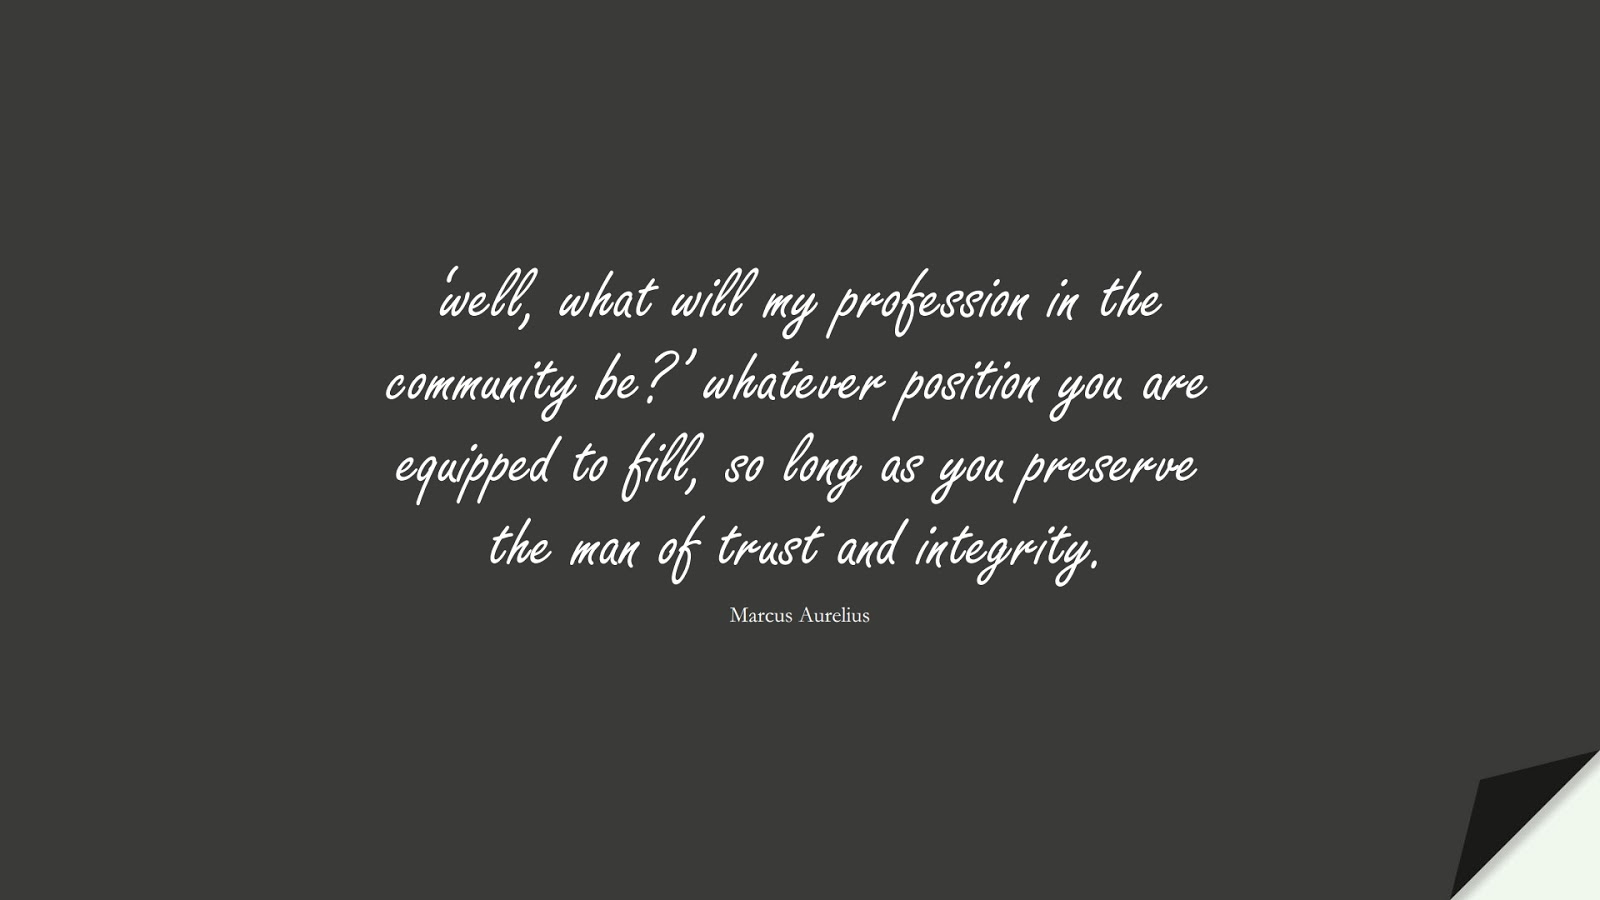 'well, what will my profession in the community be?' whatever position you are equipped to fill, so long as you preserve the man of trust and integrity. (Marcus Aurelius);  #MarcusAureliusQuotes